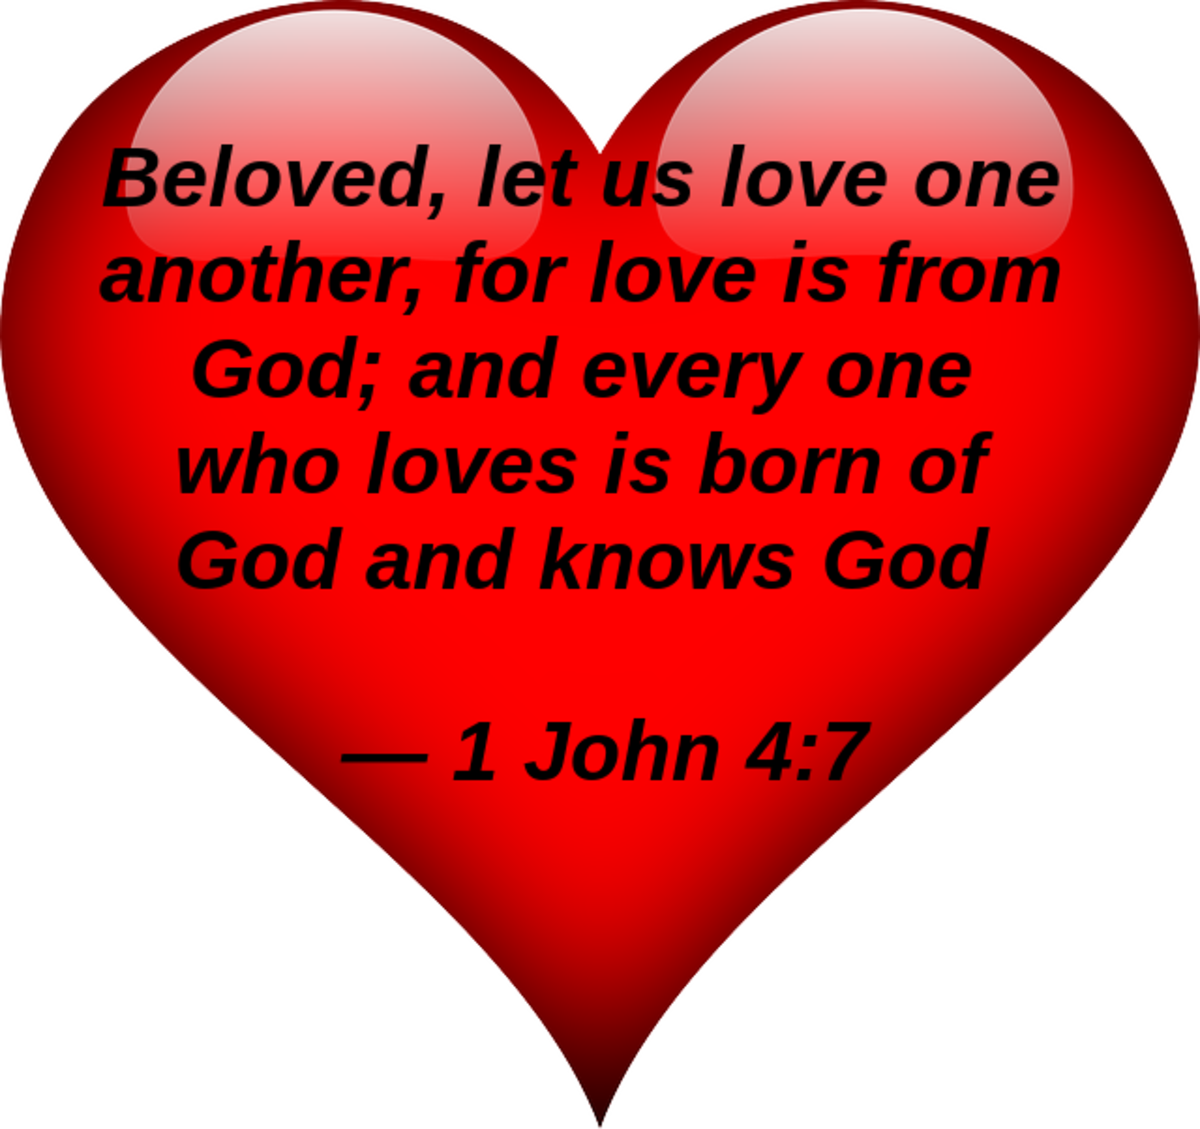 Beloved, let us love one another, for love is from God; and every one who loves is born of God and knows God. -- 1 John 4:7